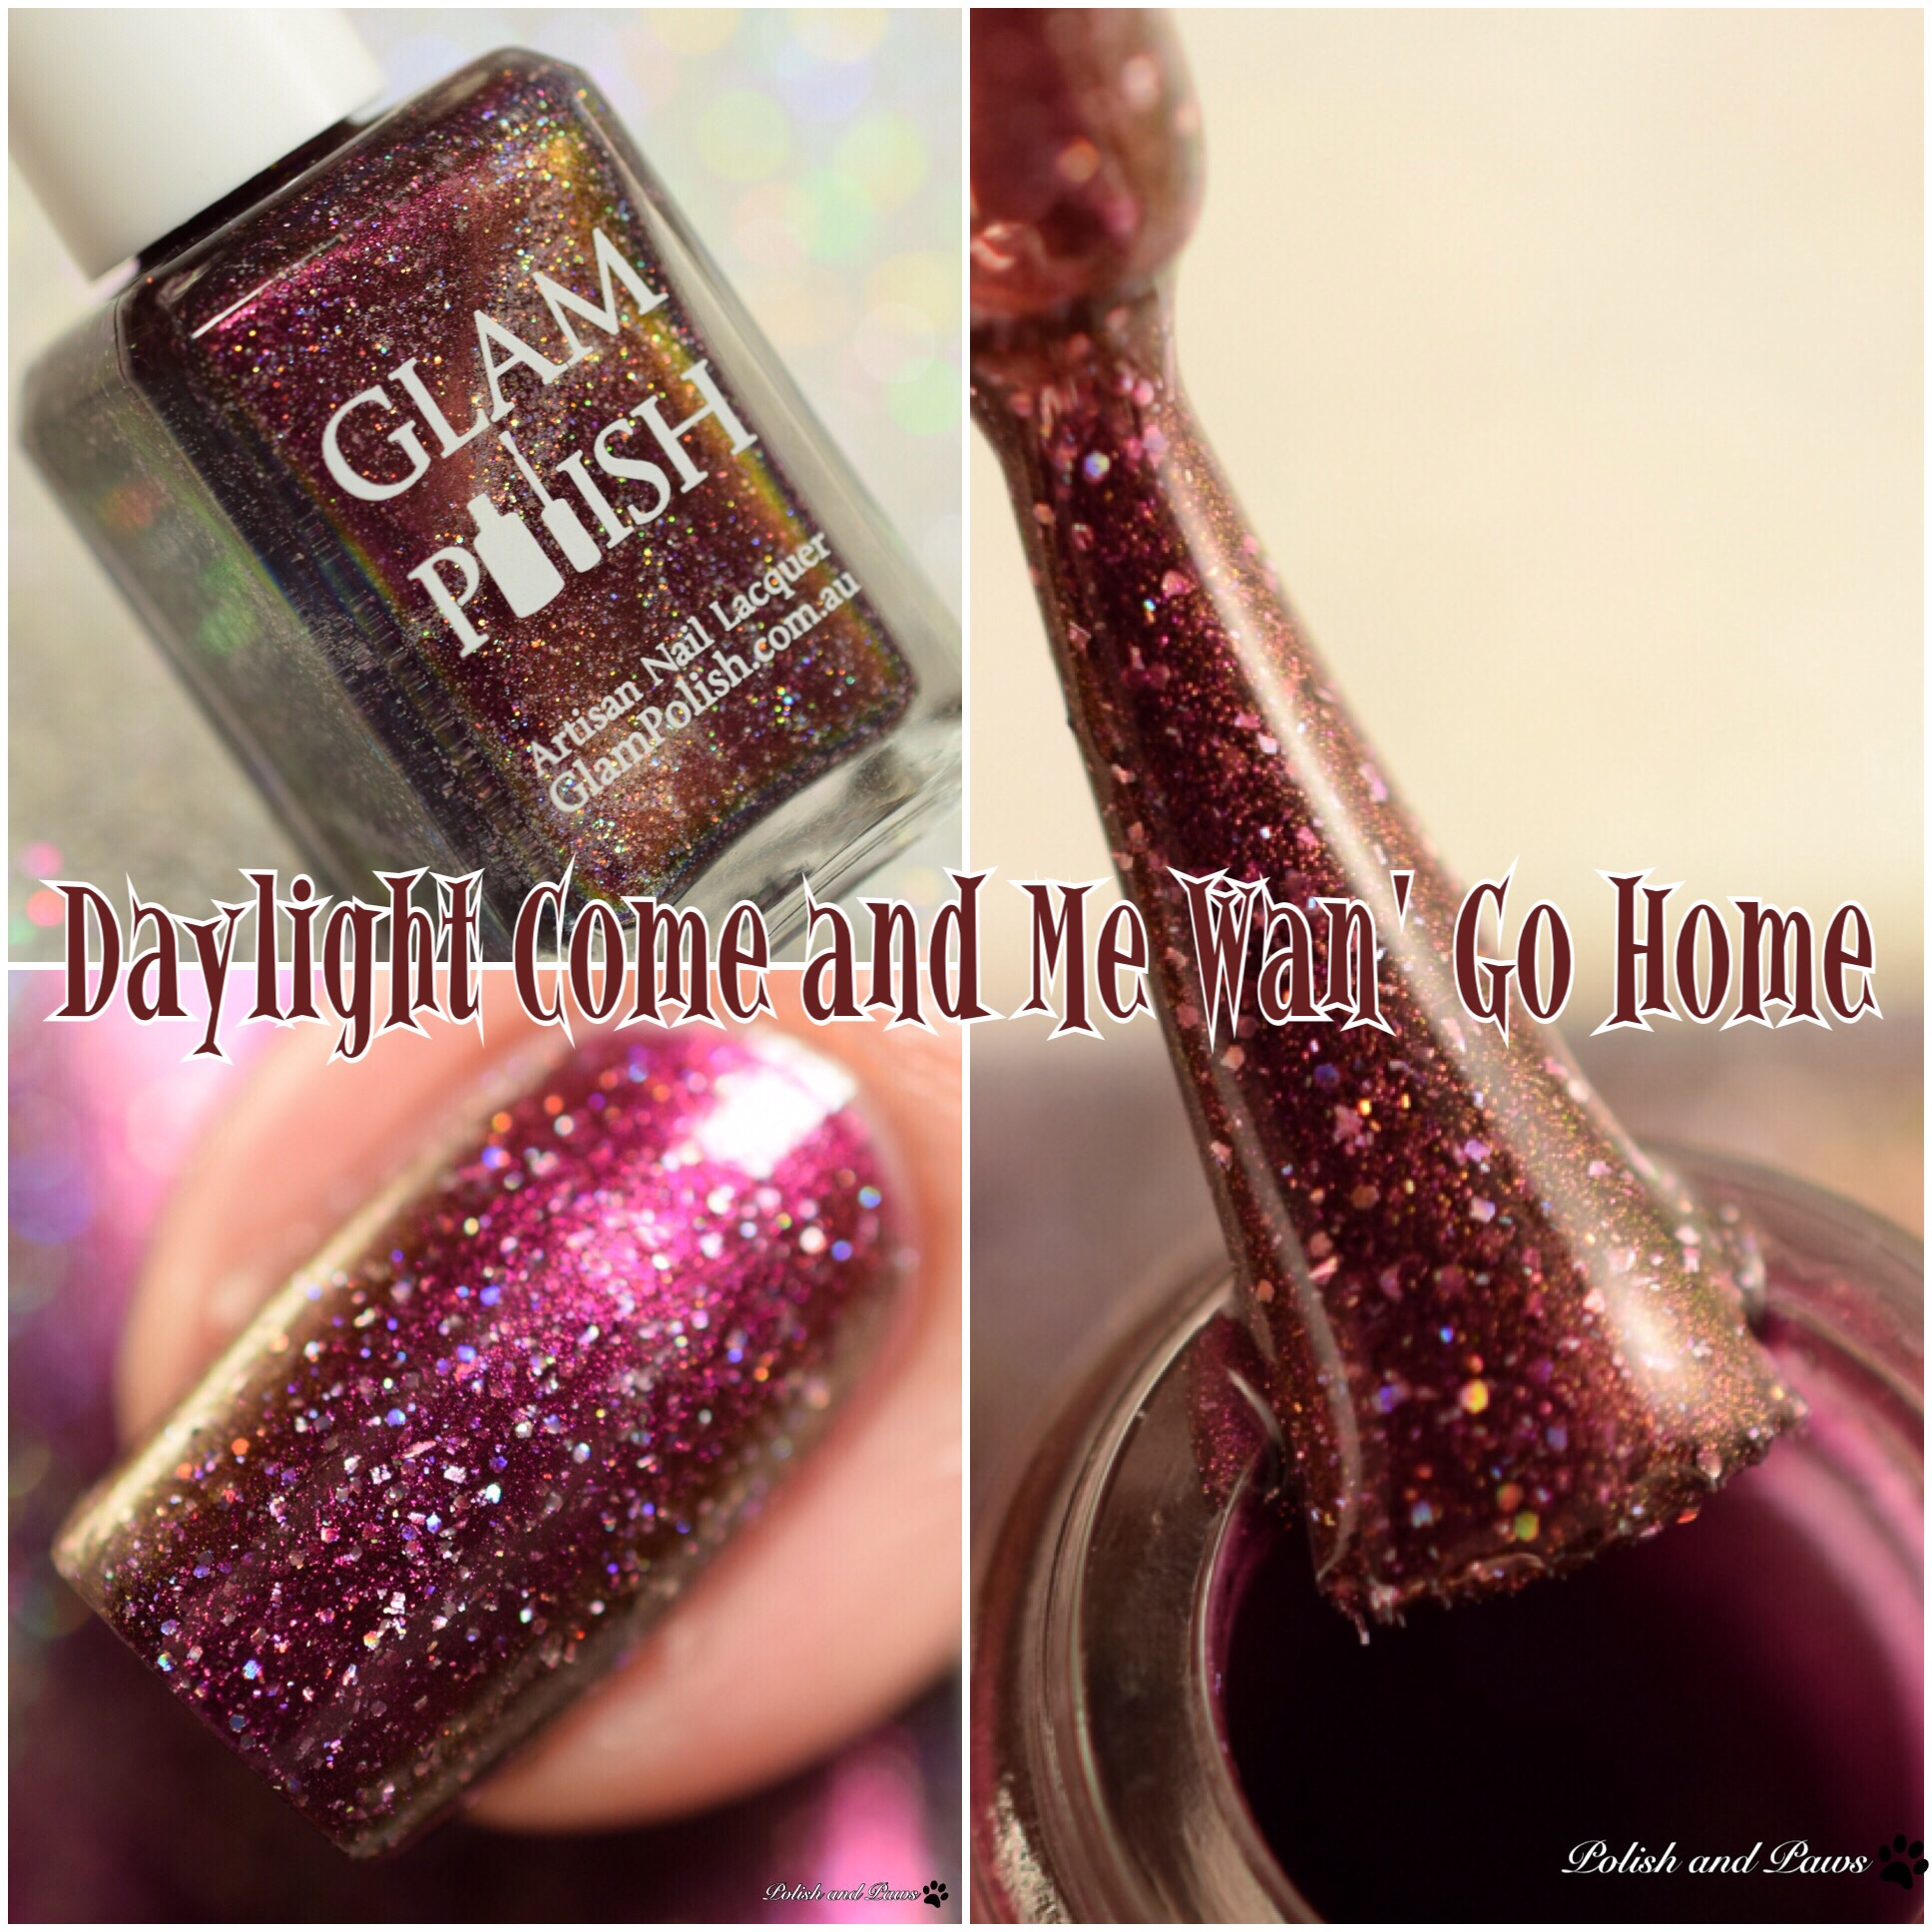 Glam Polish Daylight Come and Me Wan' Go Home